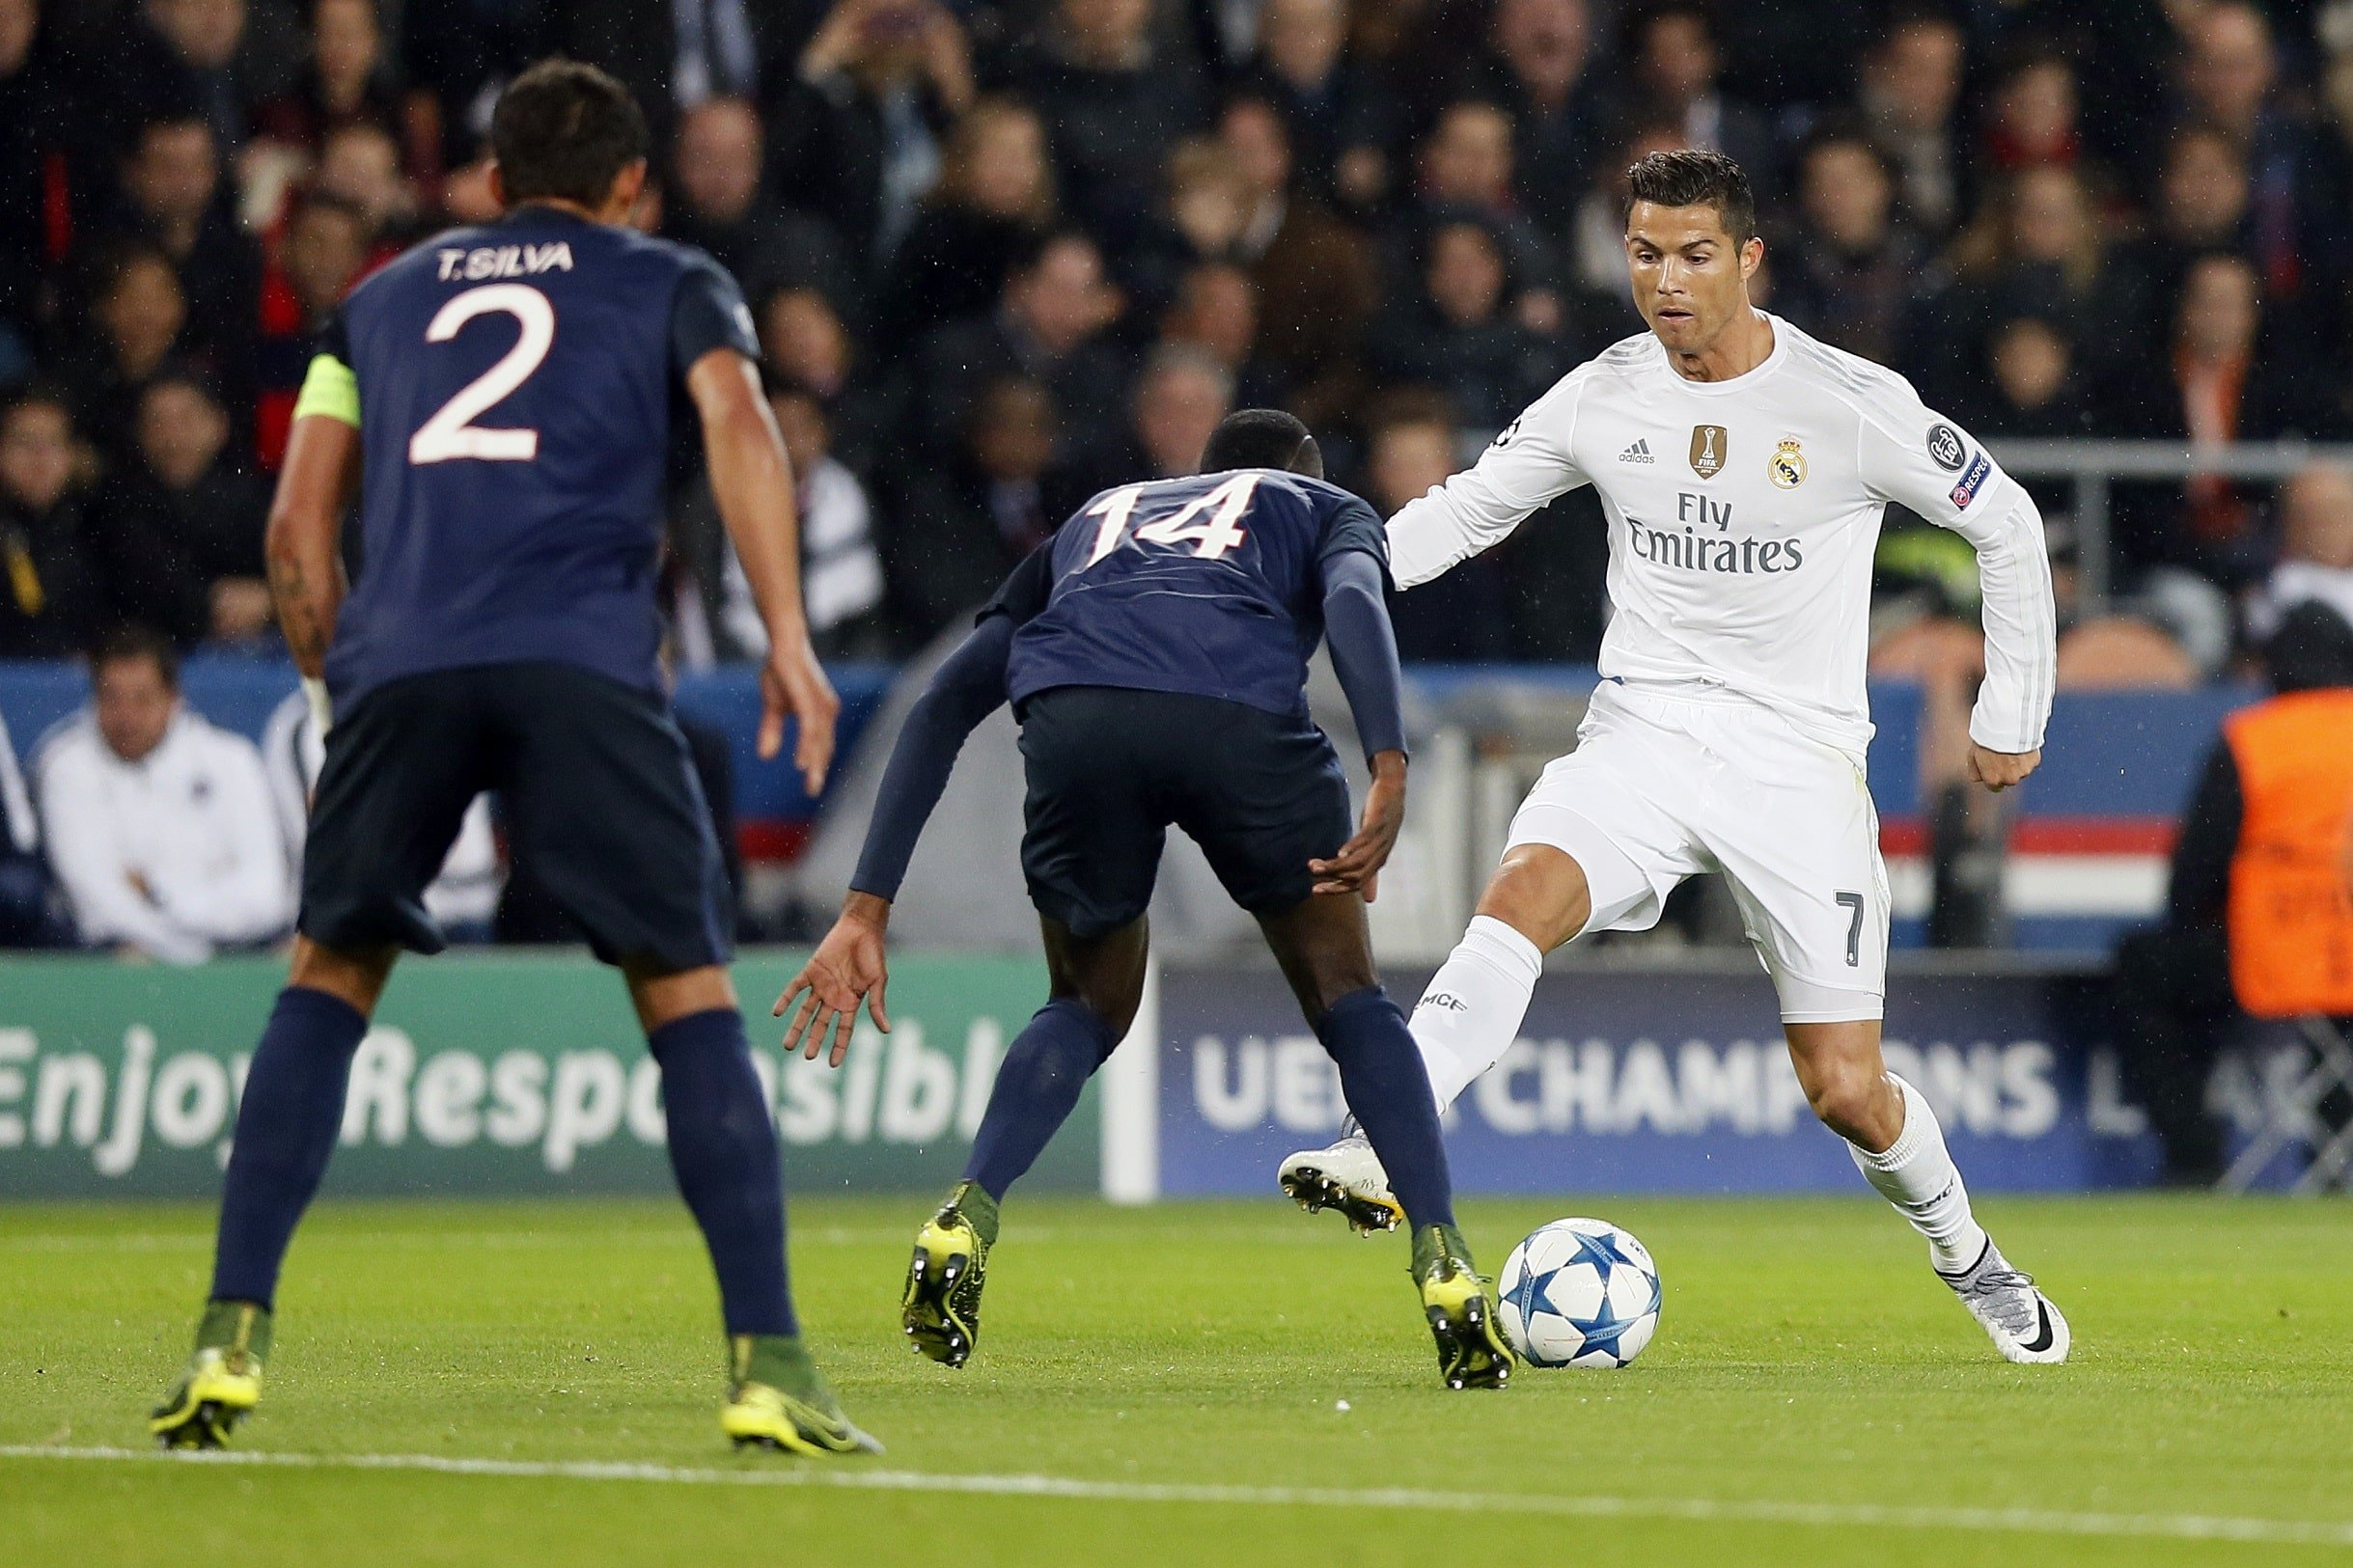 Real-Madryt-vs-Paris-Saint-Germain